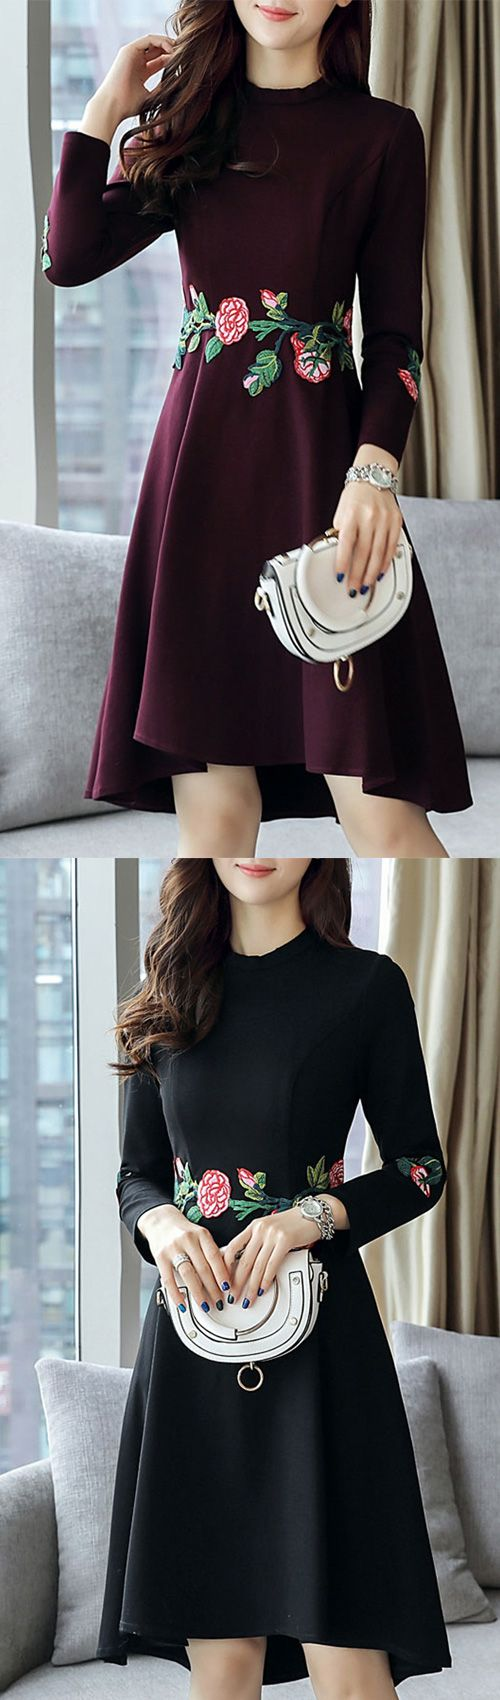 Women's Going out Plus Size Street chic Embroidered Round Neck Knee-length Asymmetrical Long Sleeves Sheath Dress